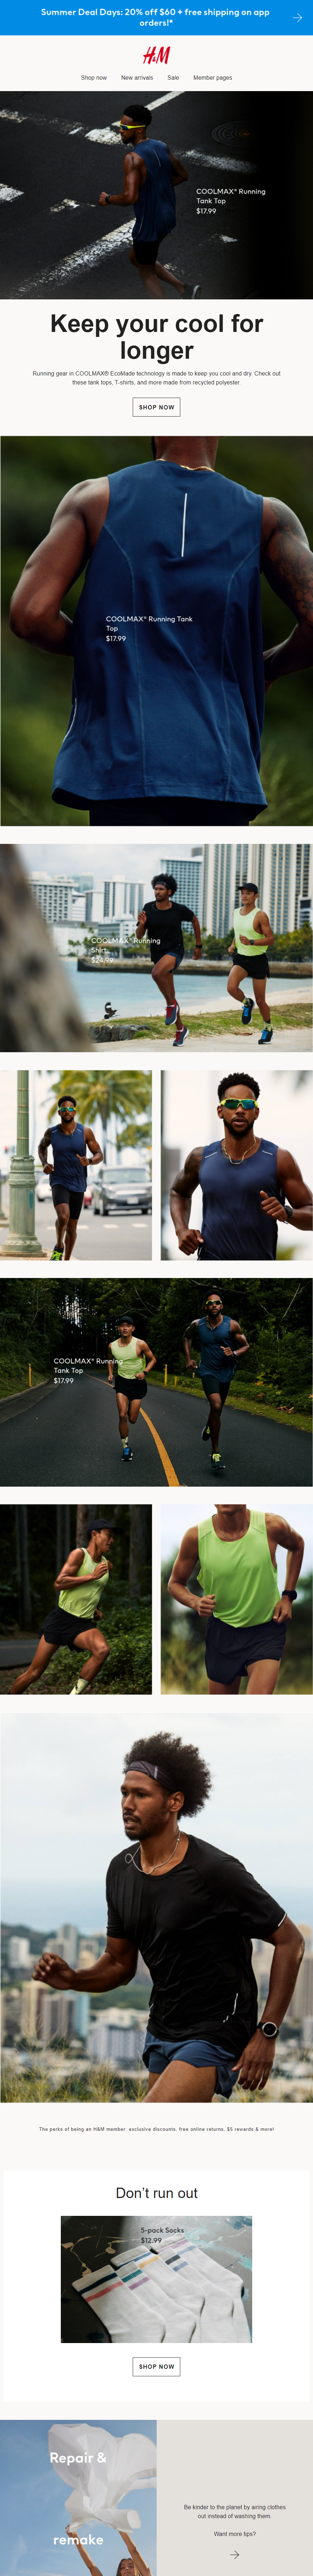 HM-breathable-running-gear